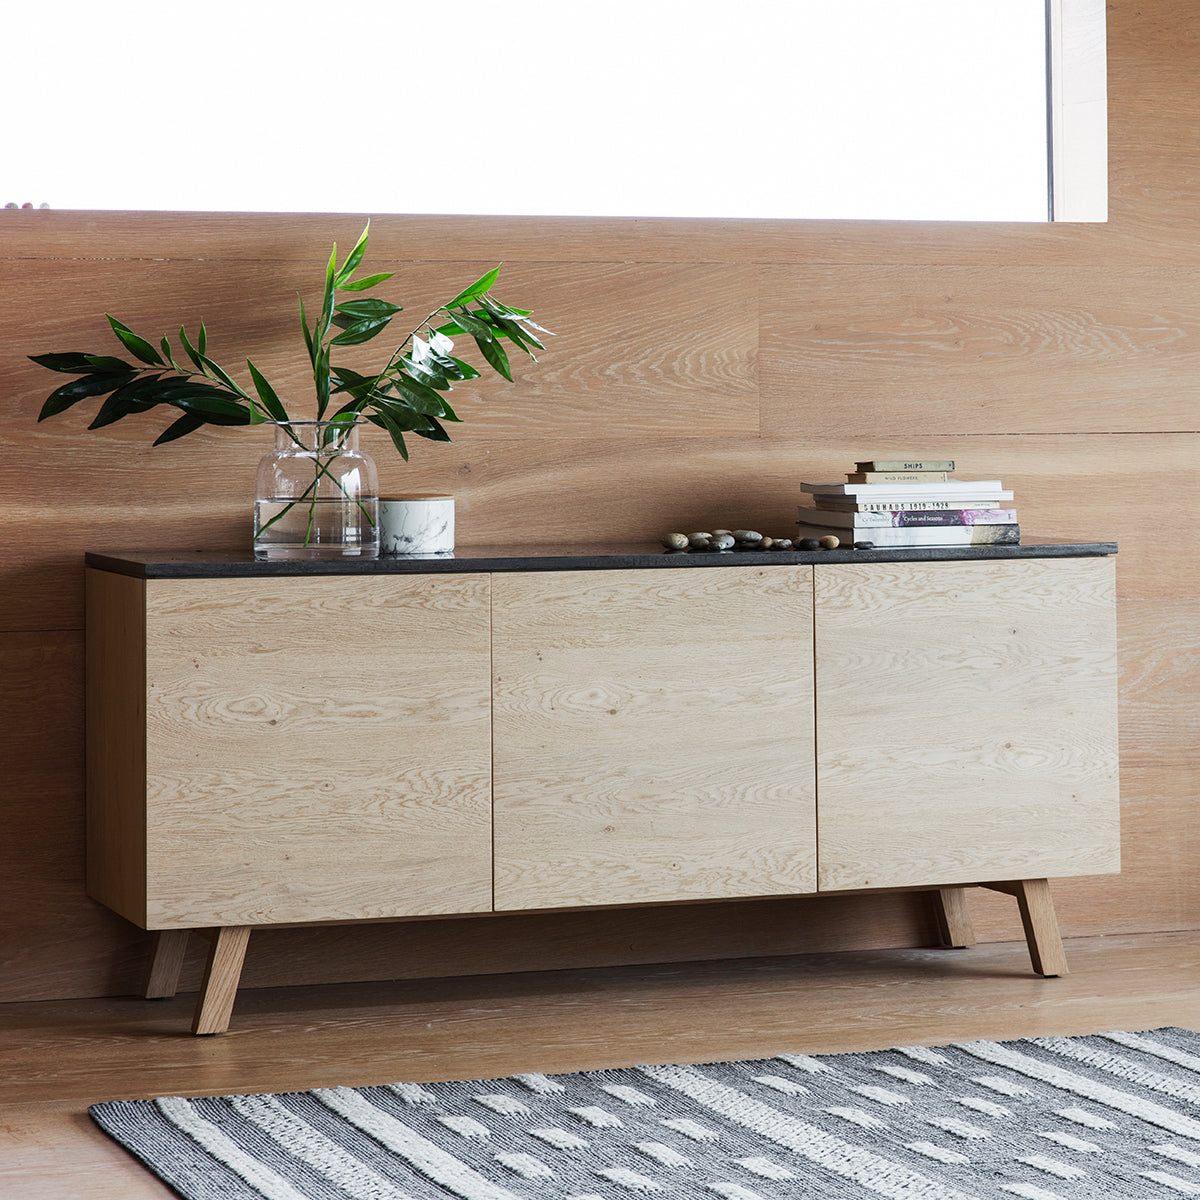 Brockwell Burnished 3 Door 1 Drawer Sideboard - Ezzo